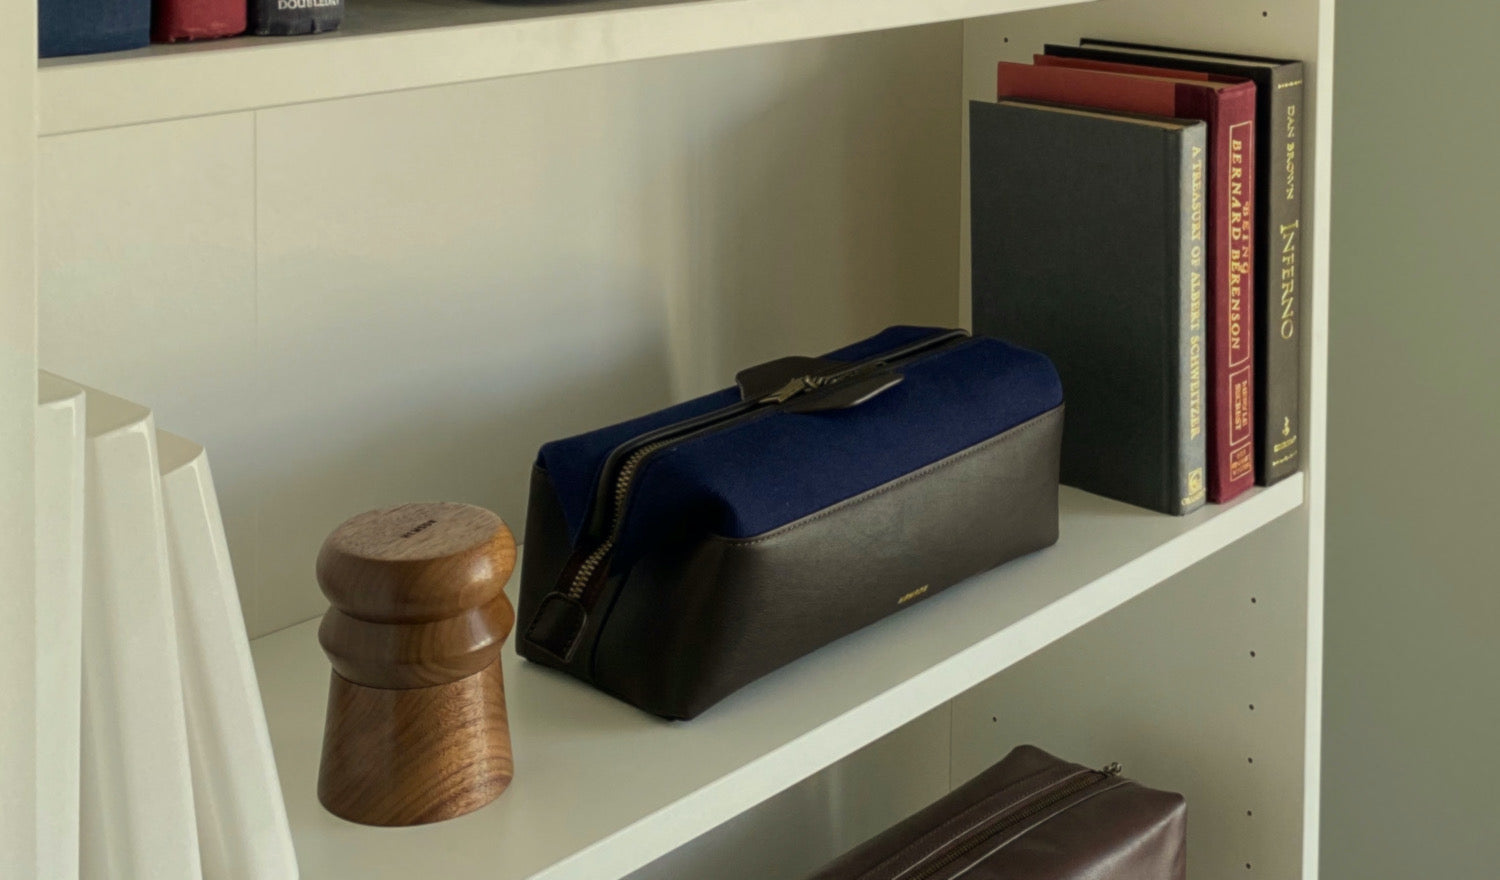 shelf with books, weed grinder and bag